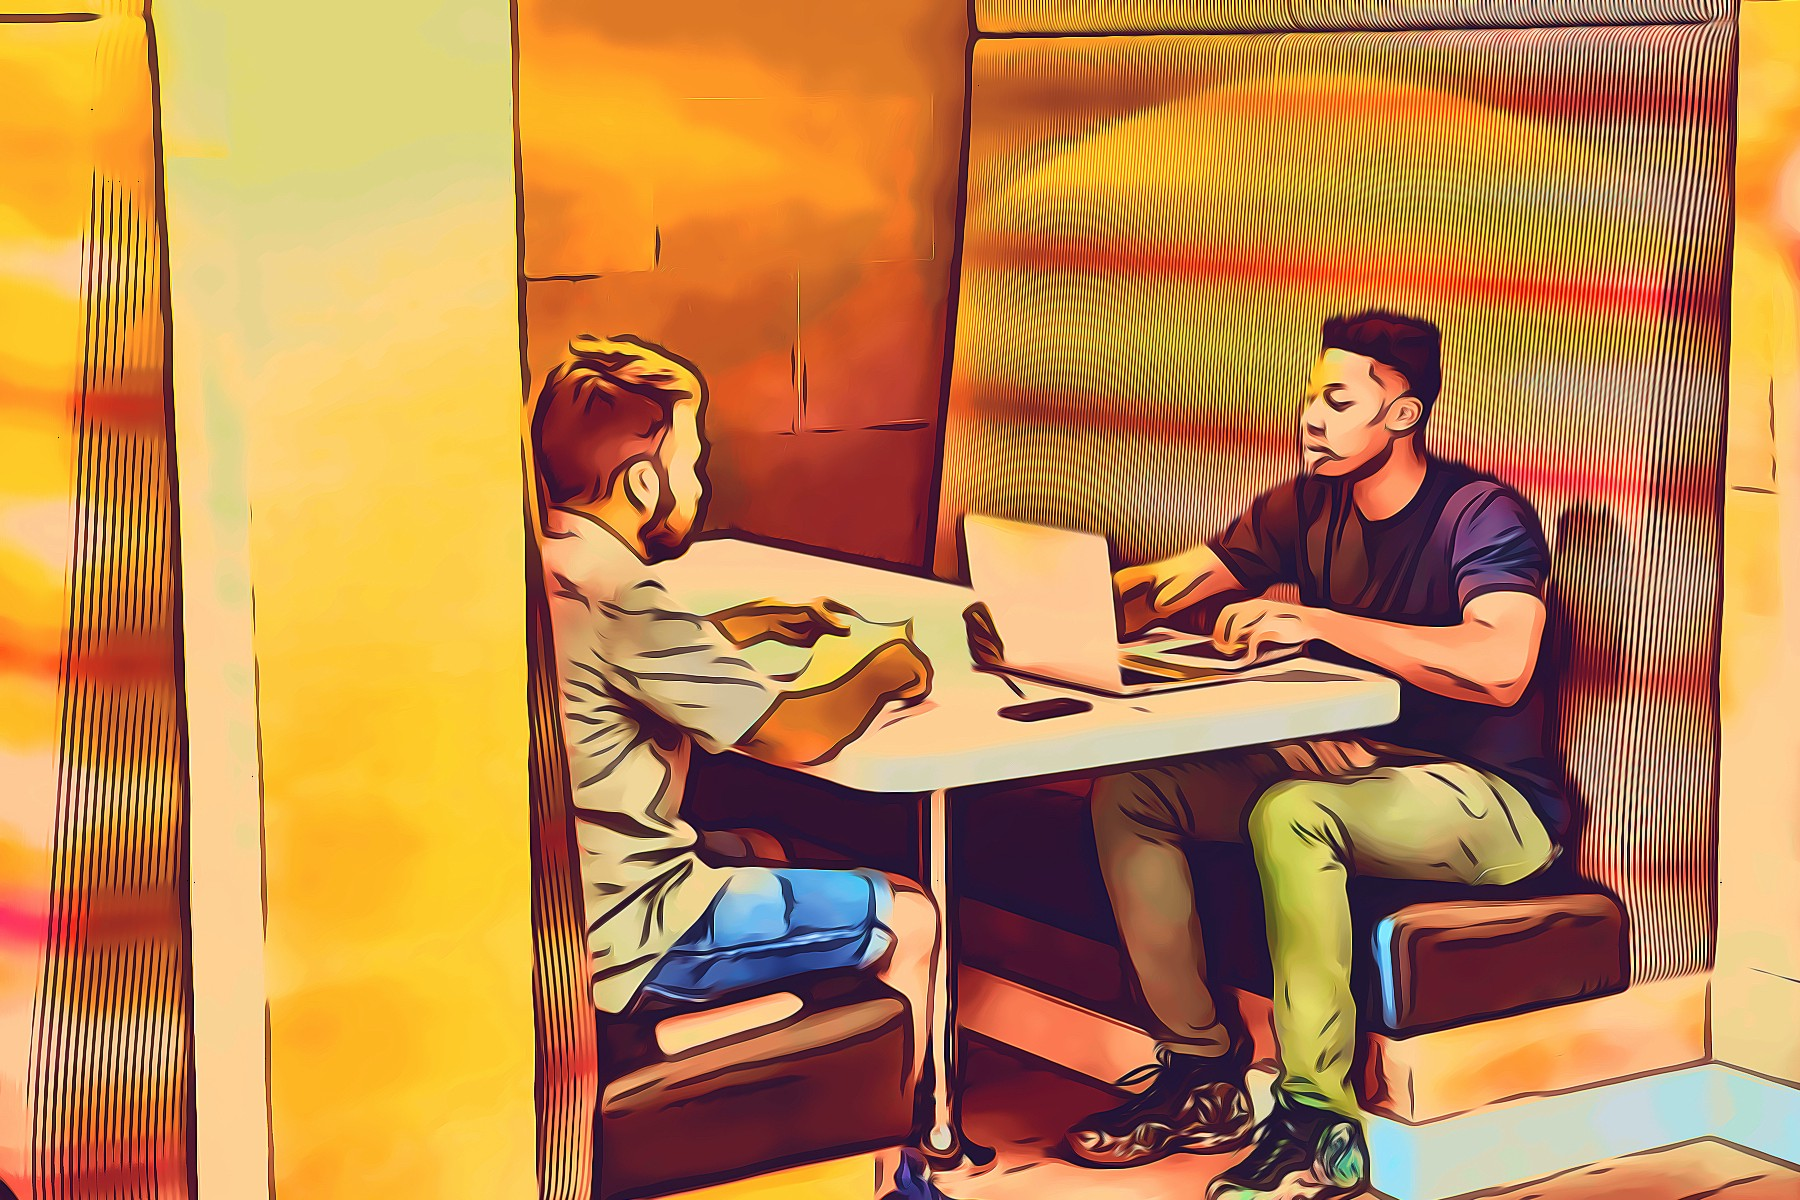 Two men sitting in a booth with a laptop, talking